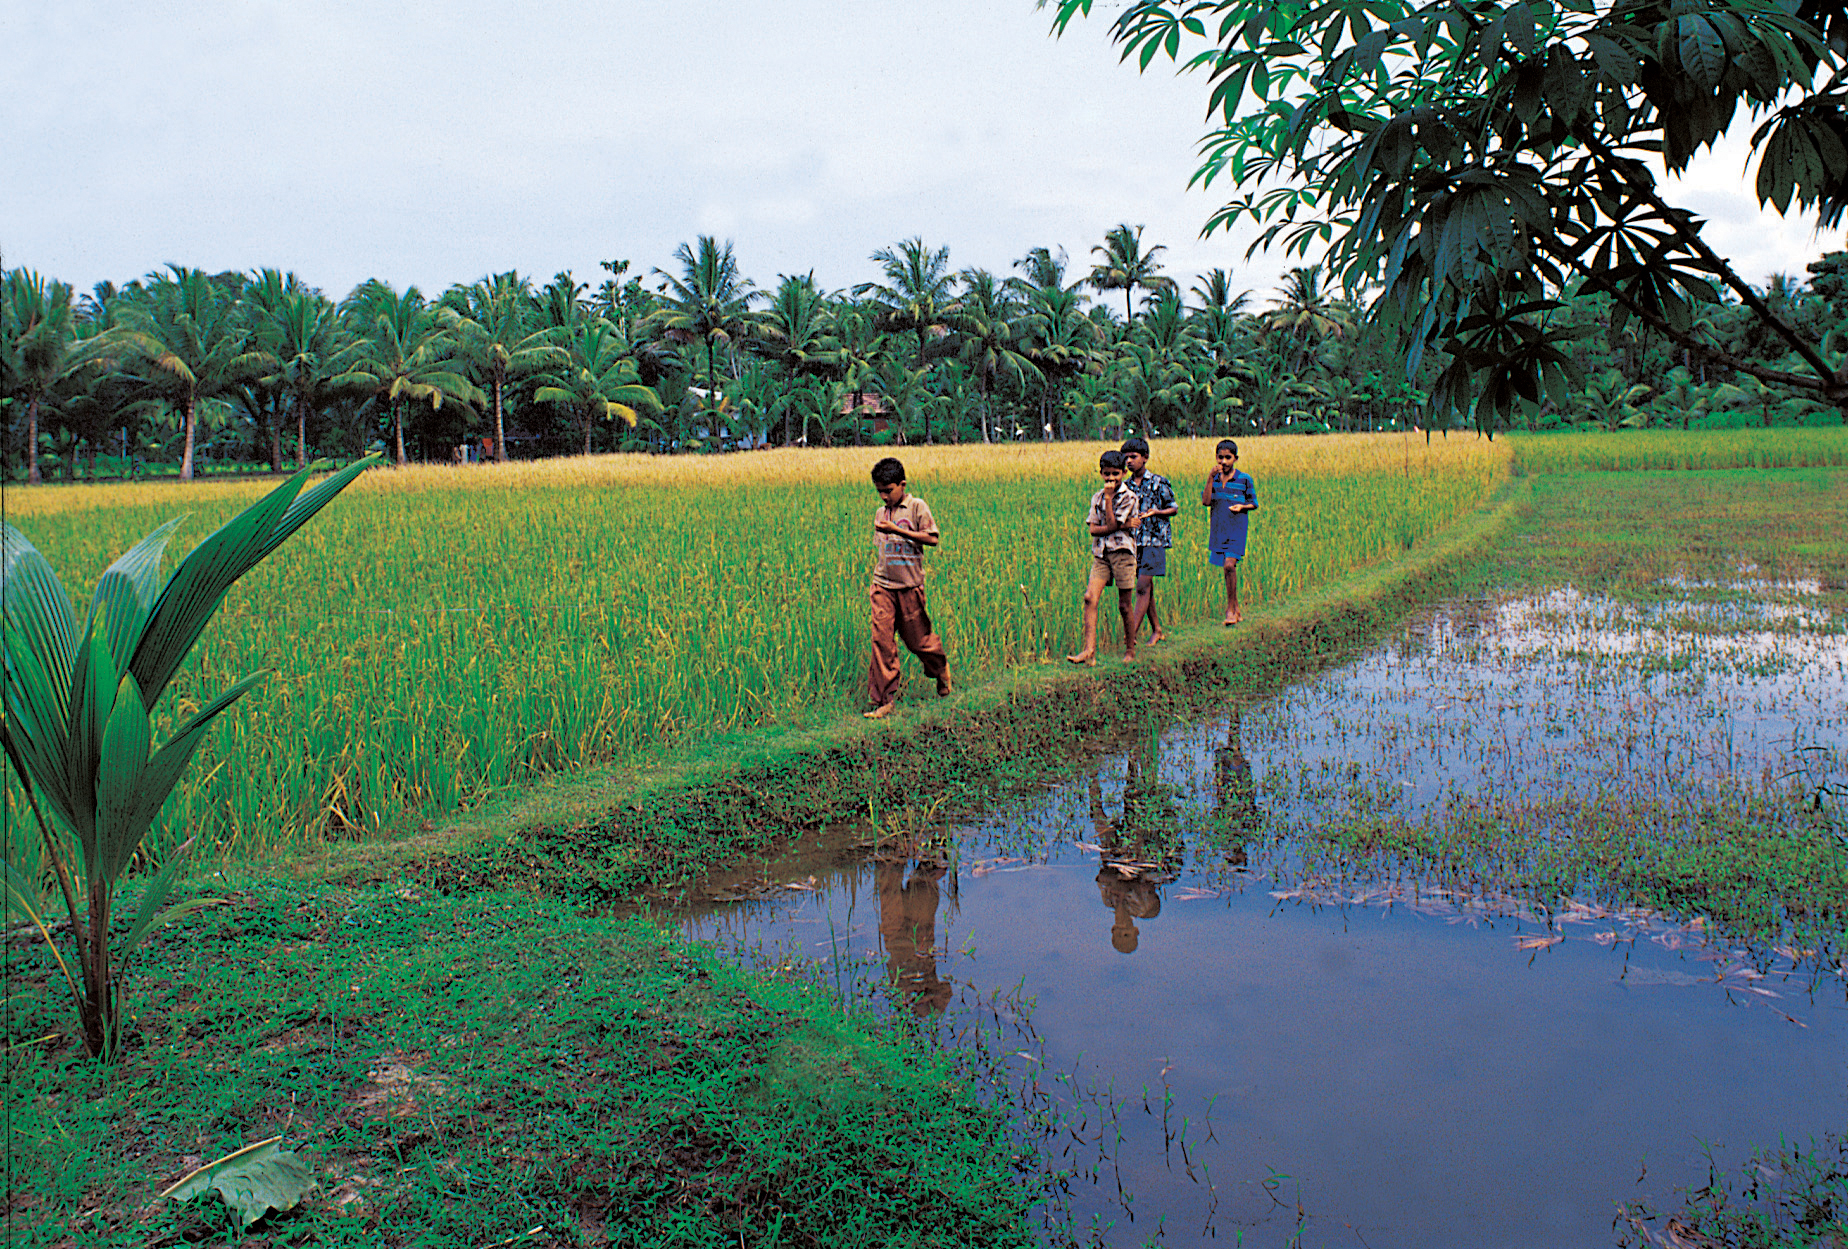 tourism in kerala Tourism of kerala: explore things to do, places to visit, best time to visit, how to reach, history & culture of kerala to plan your trip.